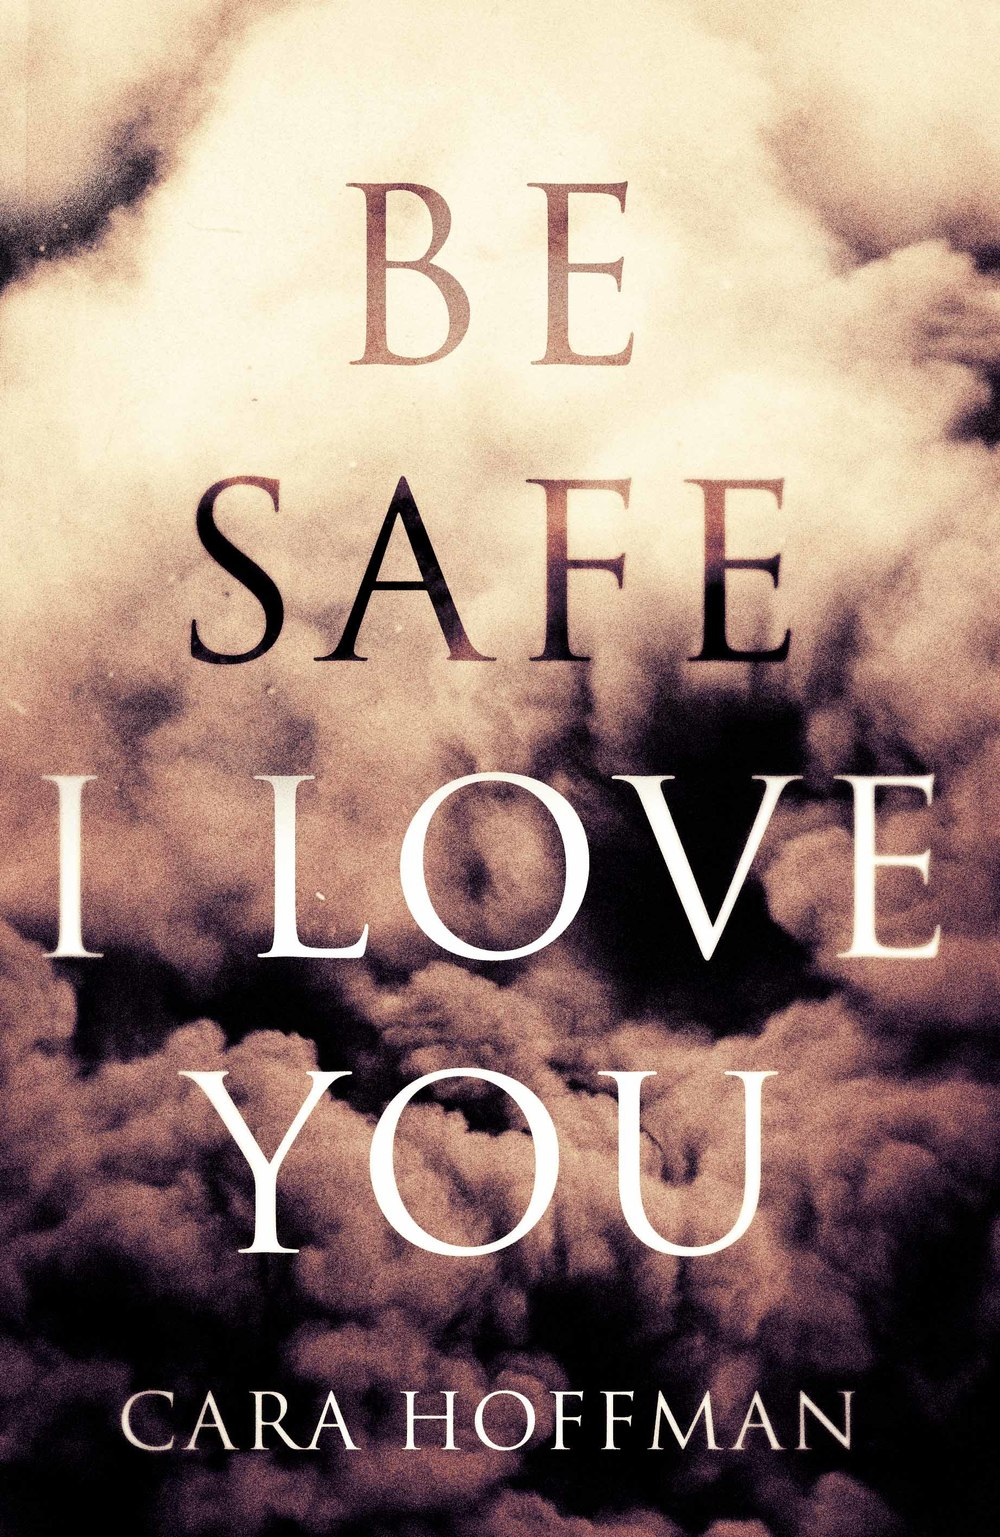 BeSafeILoveYou UK cover.jpg